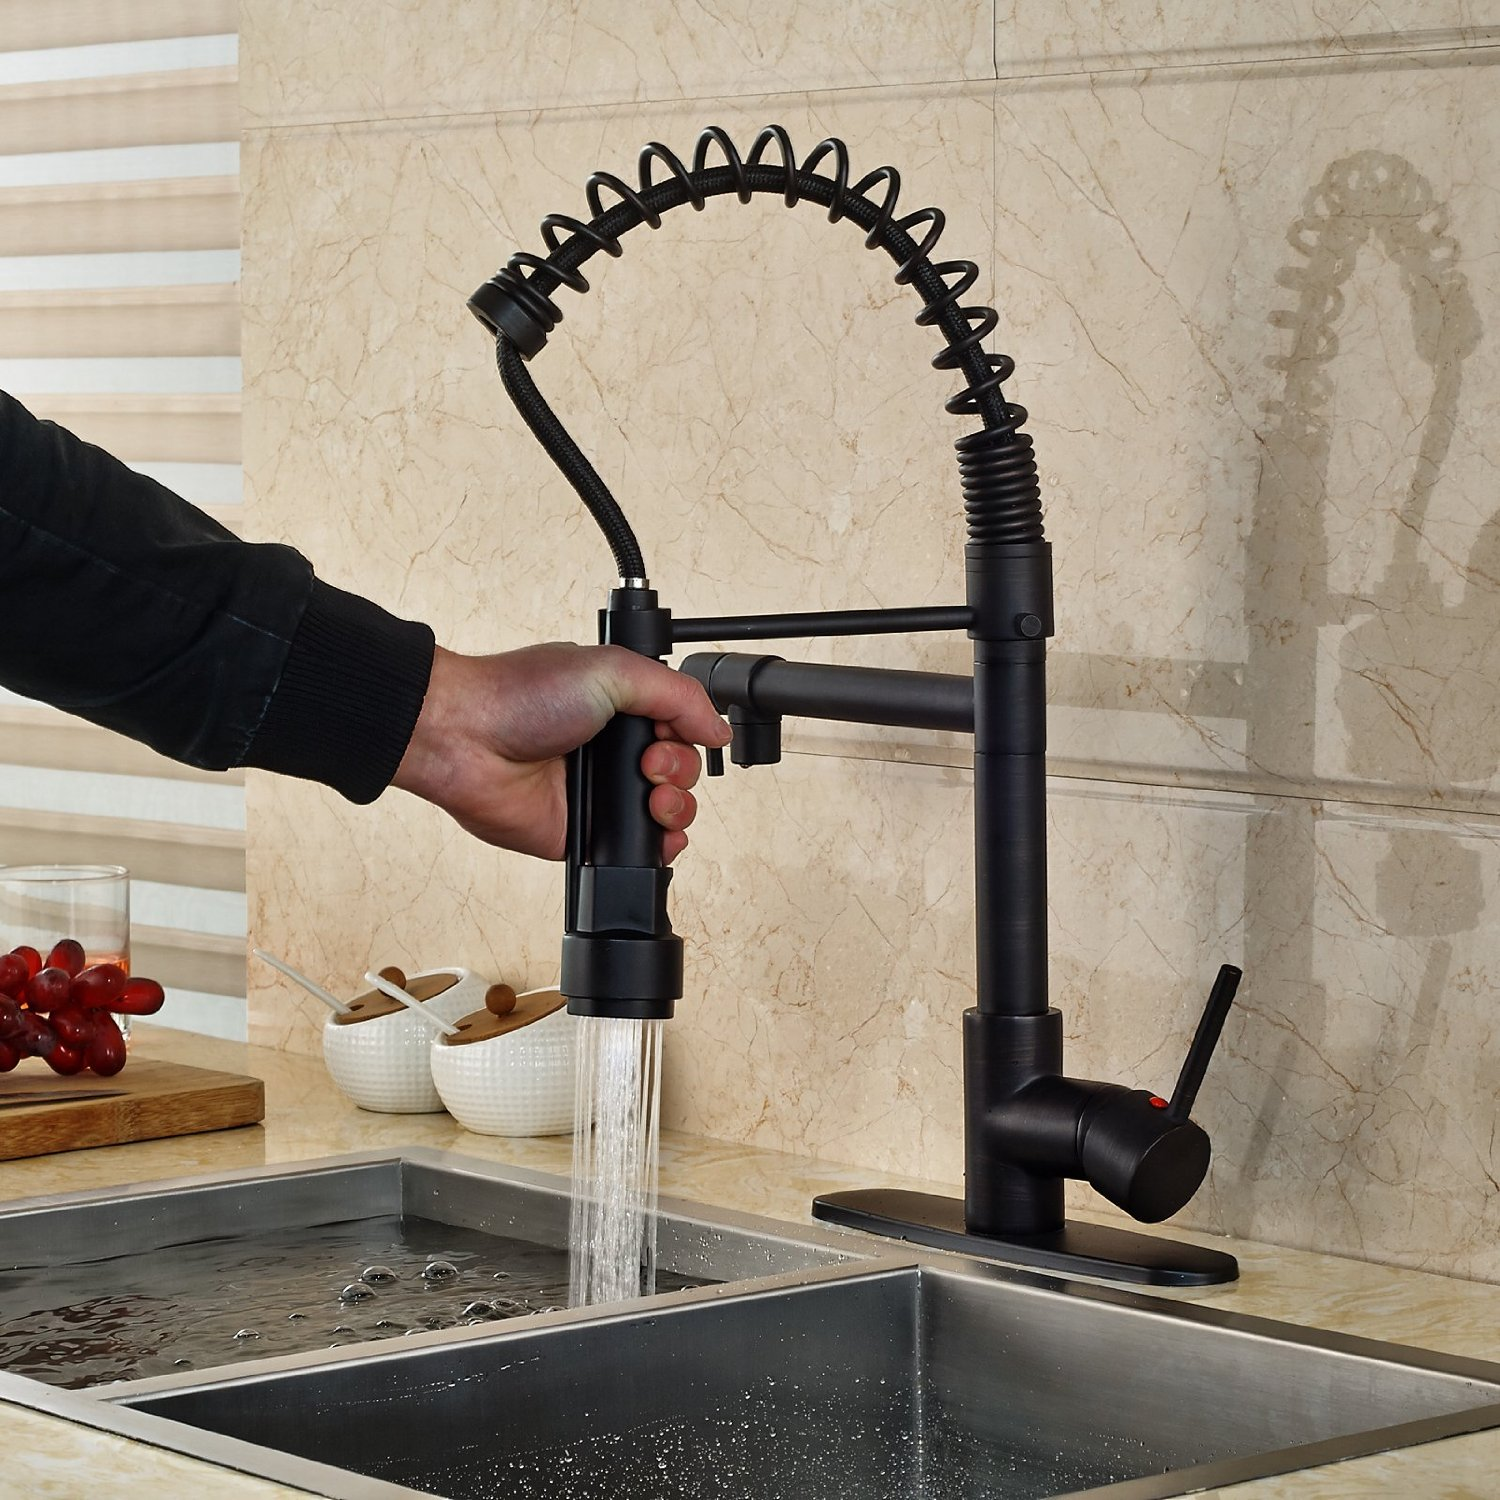 Deck Mounted Kitchen Sink Faucet with Pull Down Spray